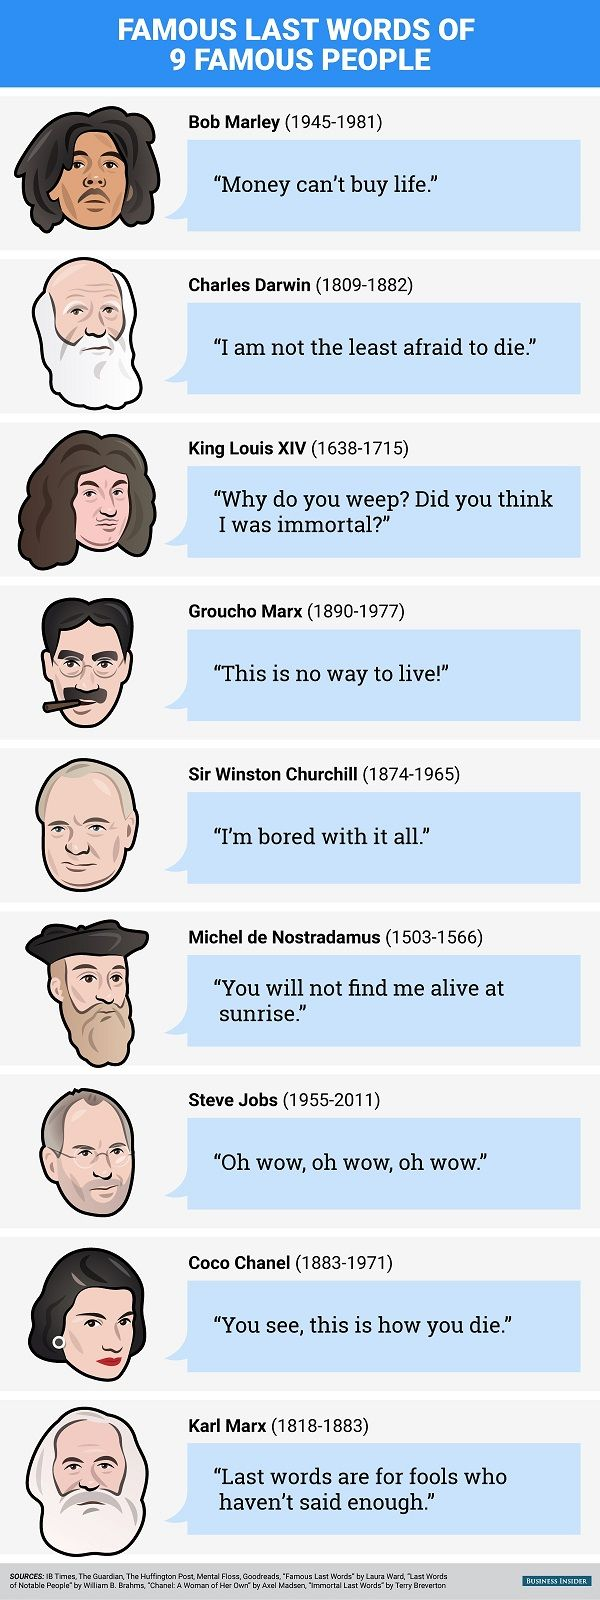 Infographic: Strange Last Words Of Steve Jobs, Coco Chanel, Other Famous People - DesignTAXI.com